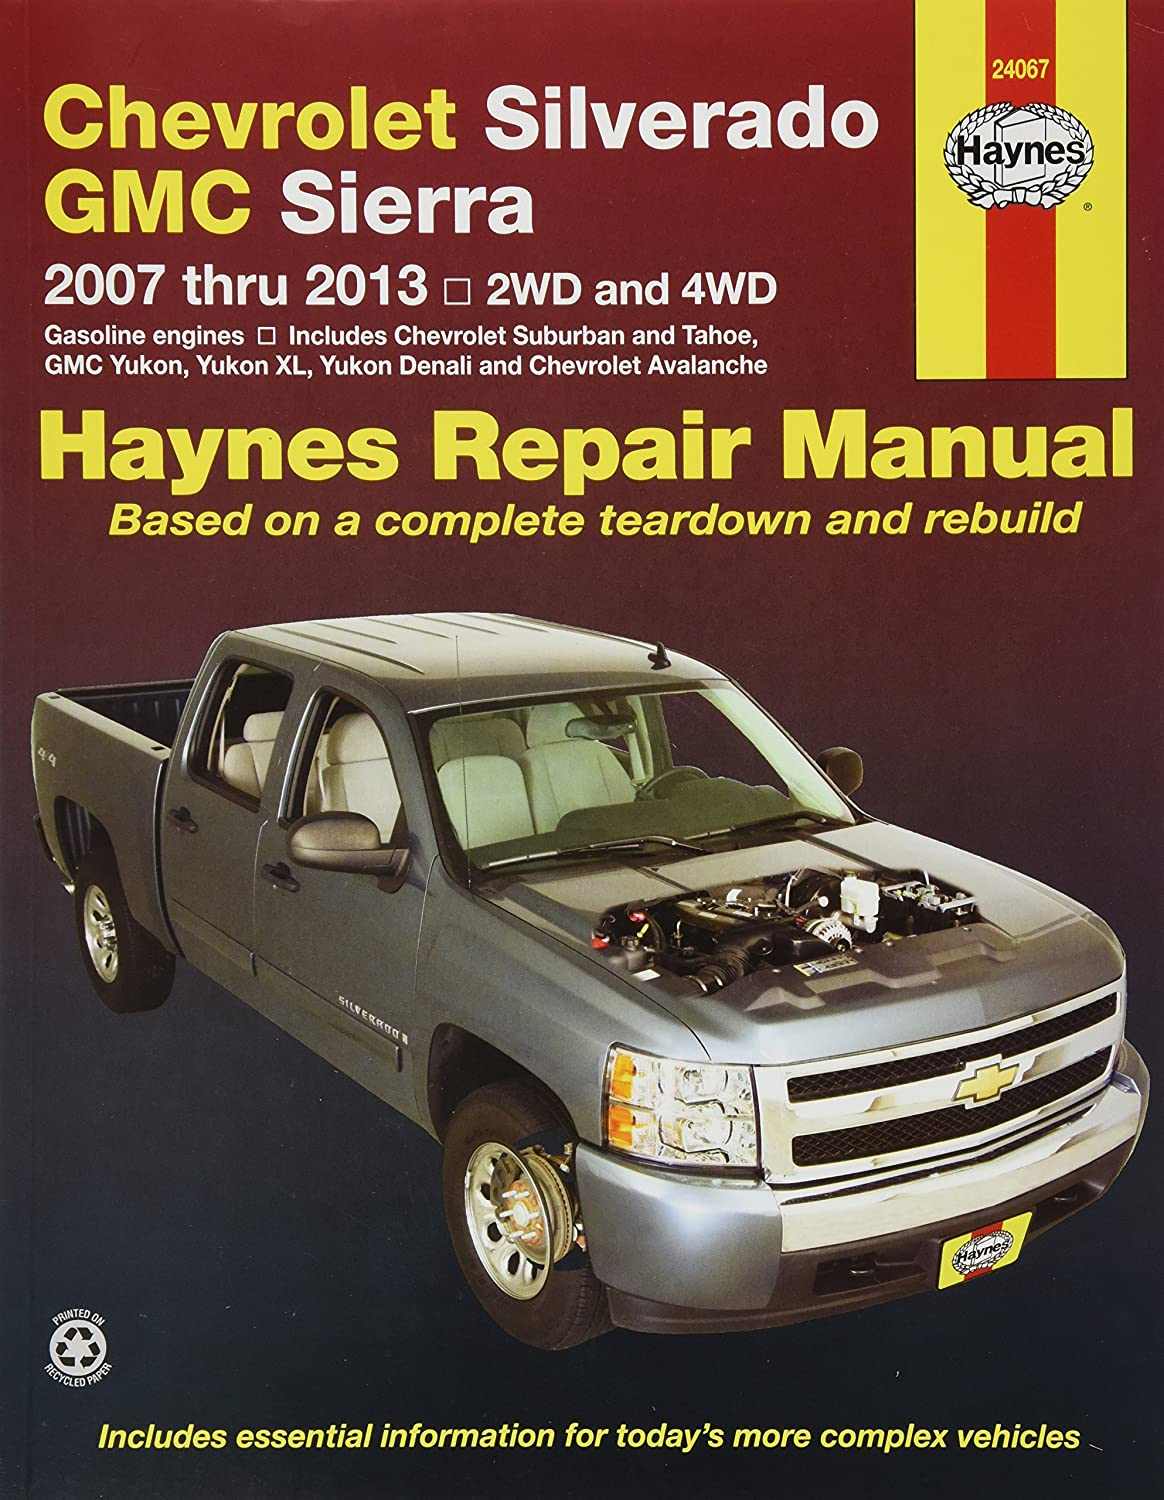 Avalanche 2007 chevy avalanche owners manual pdf Amazon.com: Haynes 24067 Chevy Silverado & GMC Sierra Repair ...